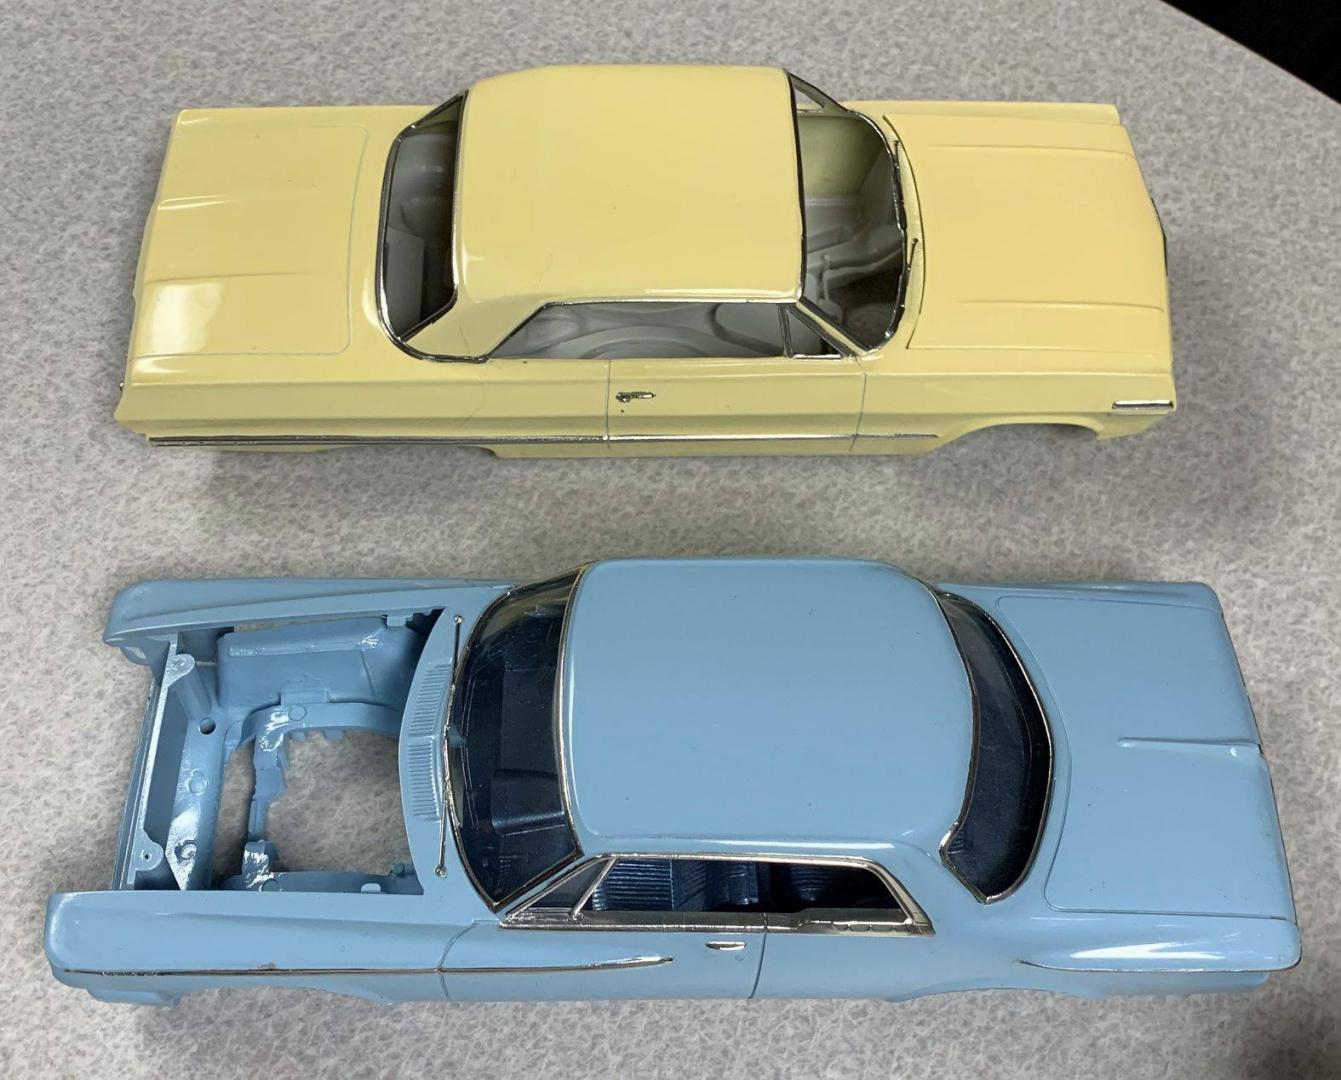 1963 Chev and 1962 Plymouth April 28,2019.jpg